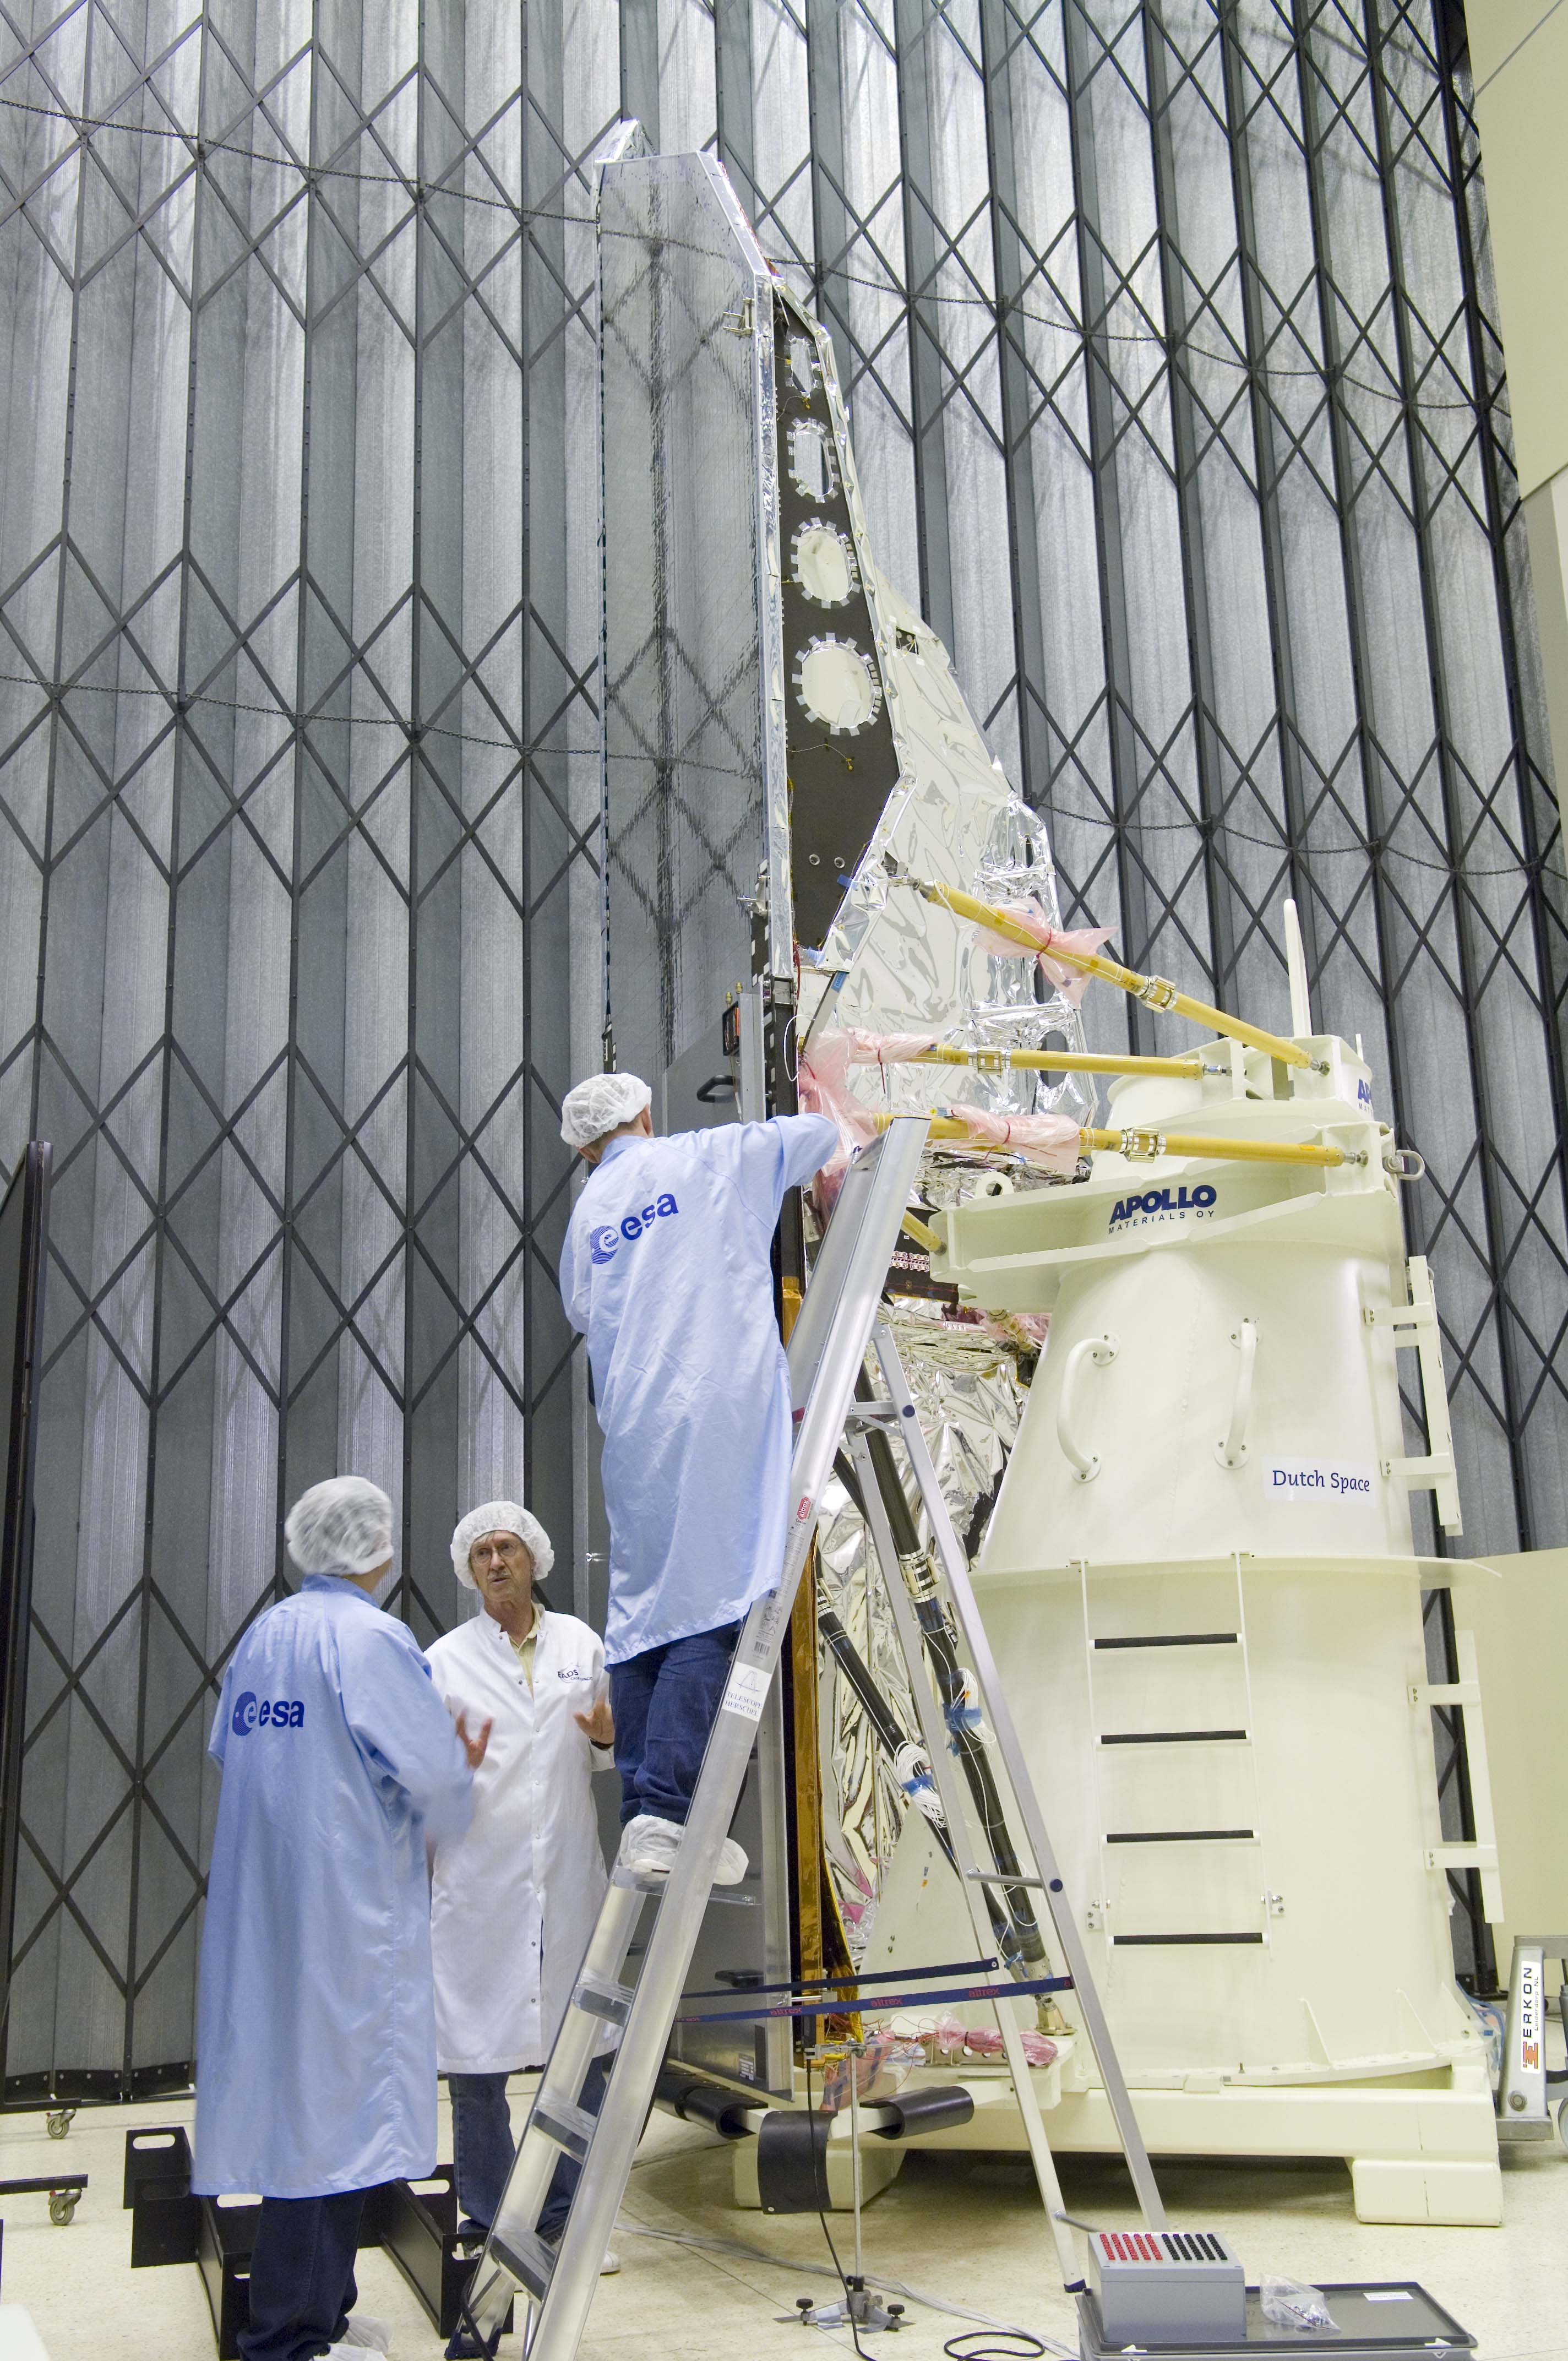 Herschel solar array flashertests